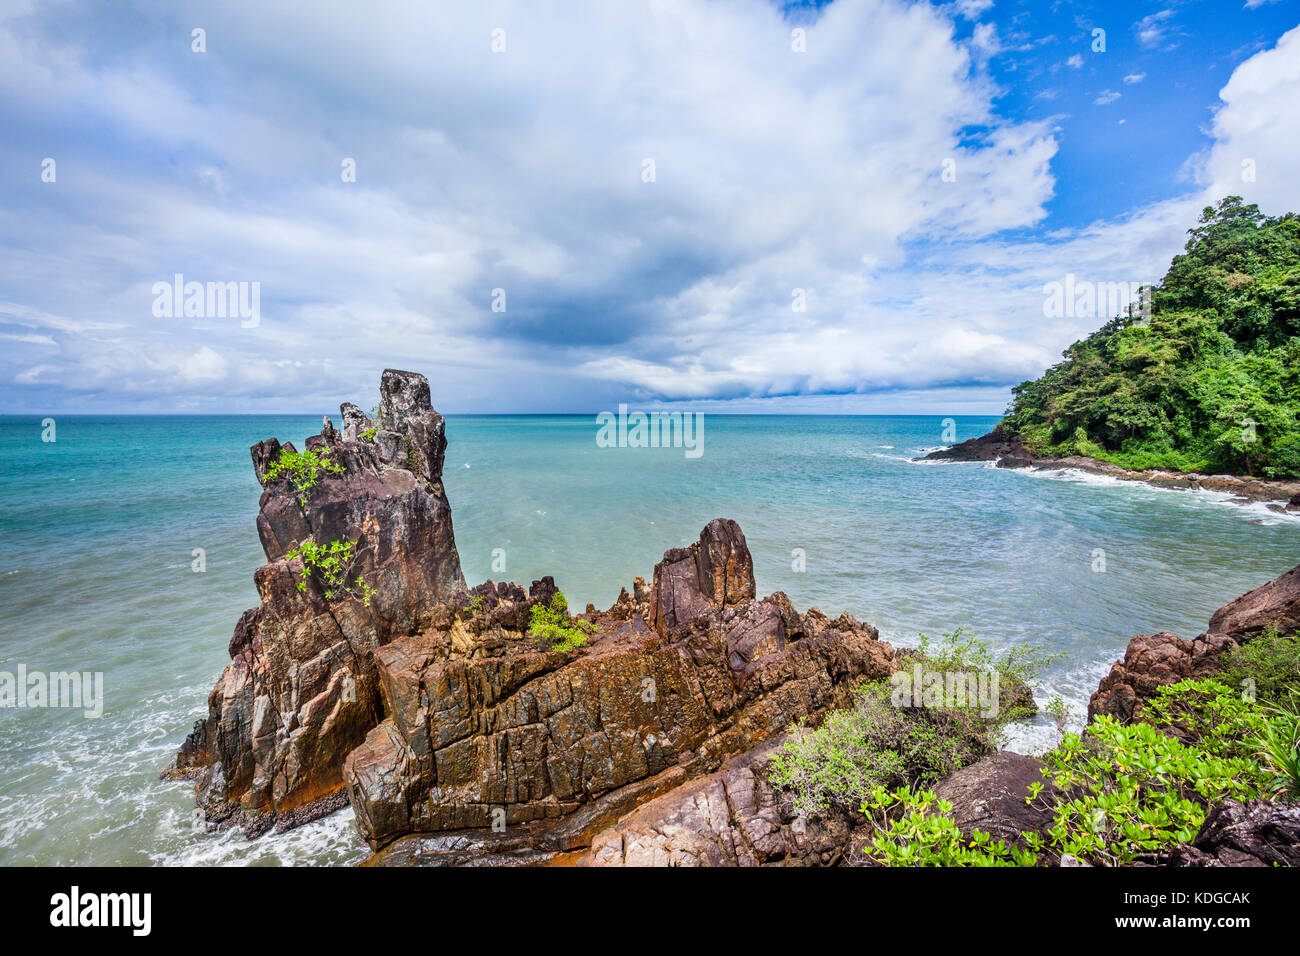 Thailand, Trat Province, tropical island of Koh Chang in the Gulf of Thailand, rocky promontory Cape Chai Chet on - Stock Image